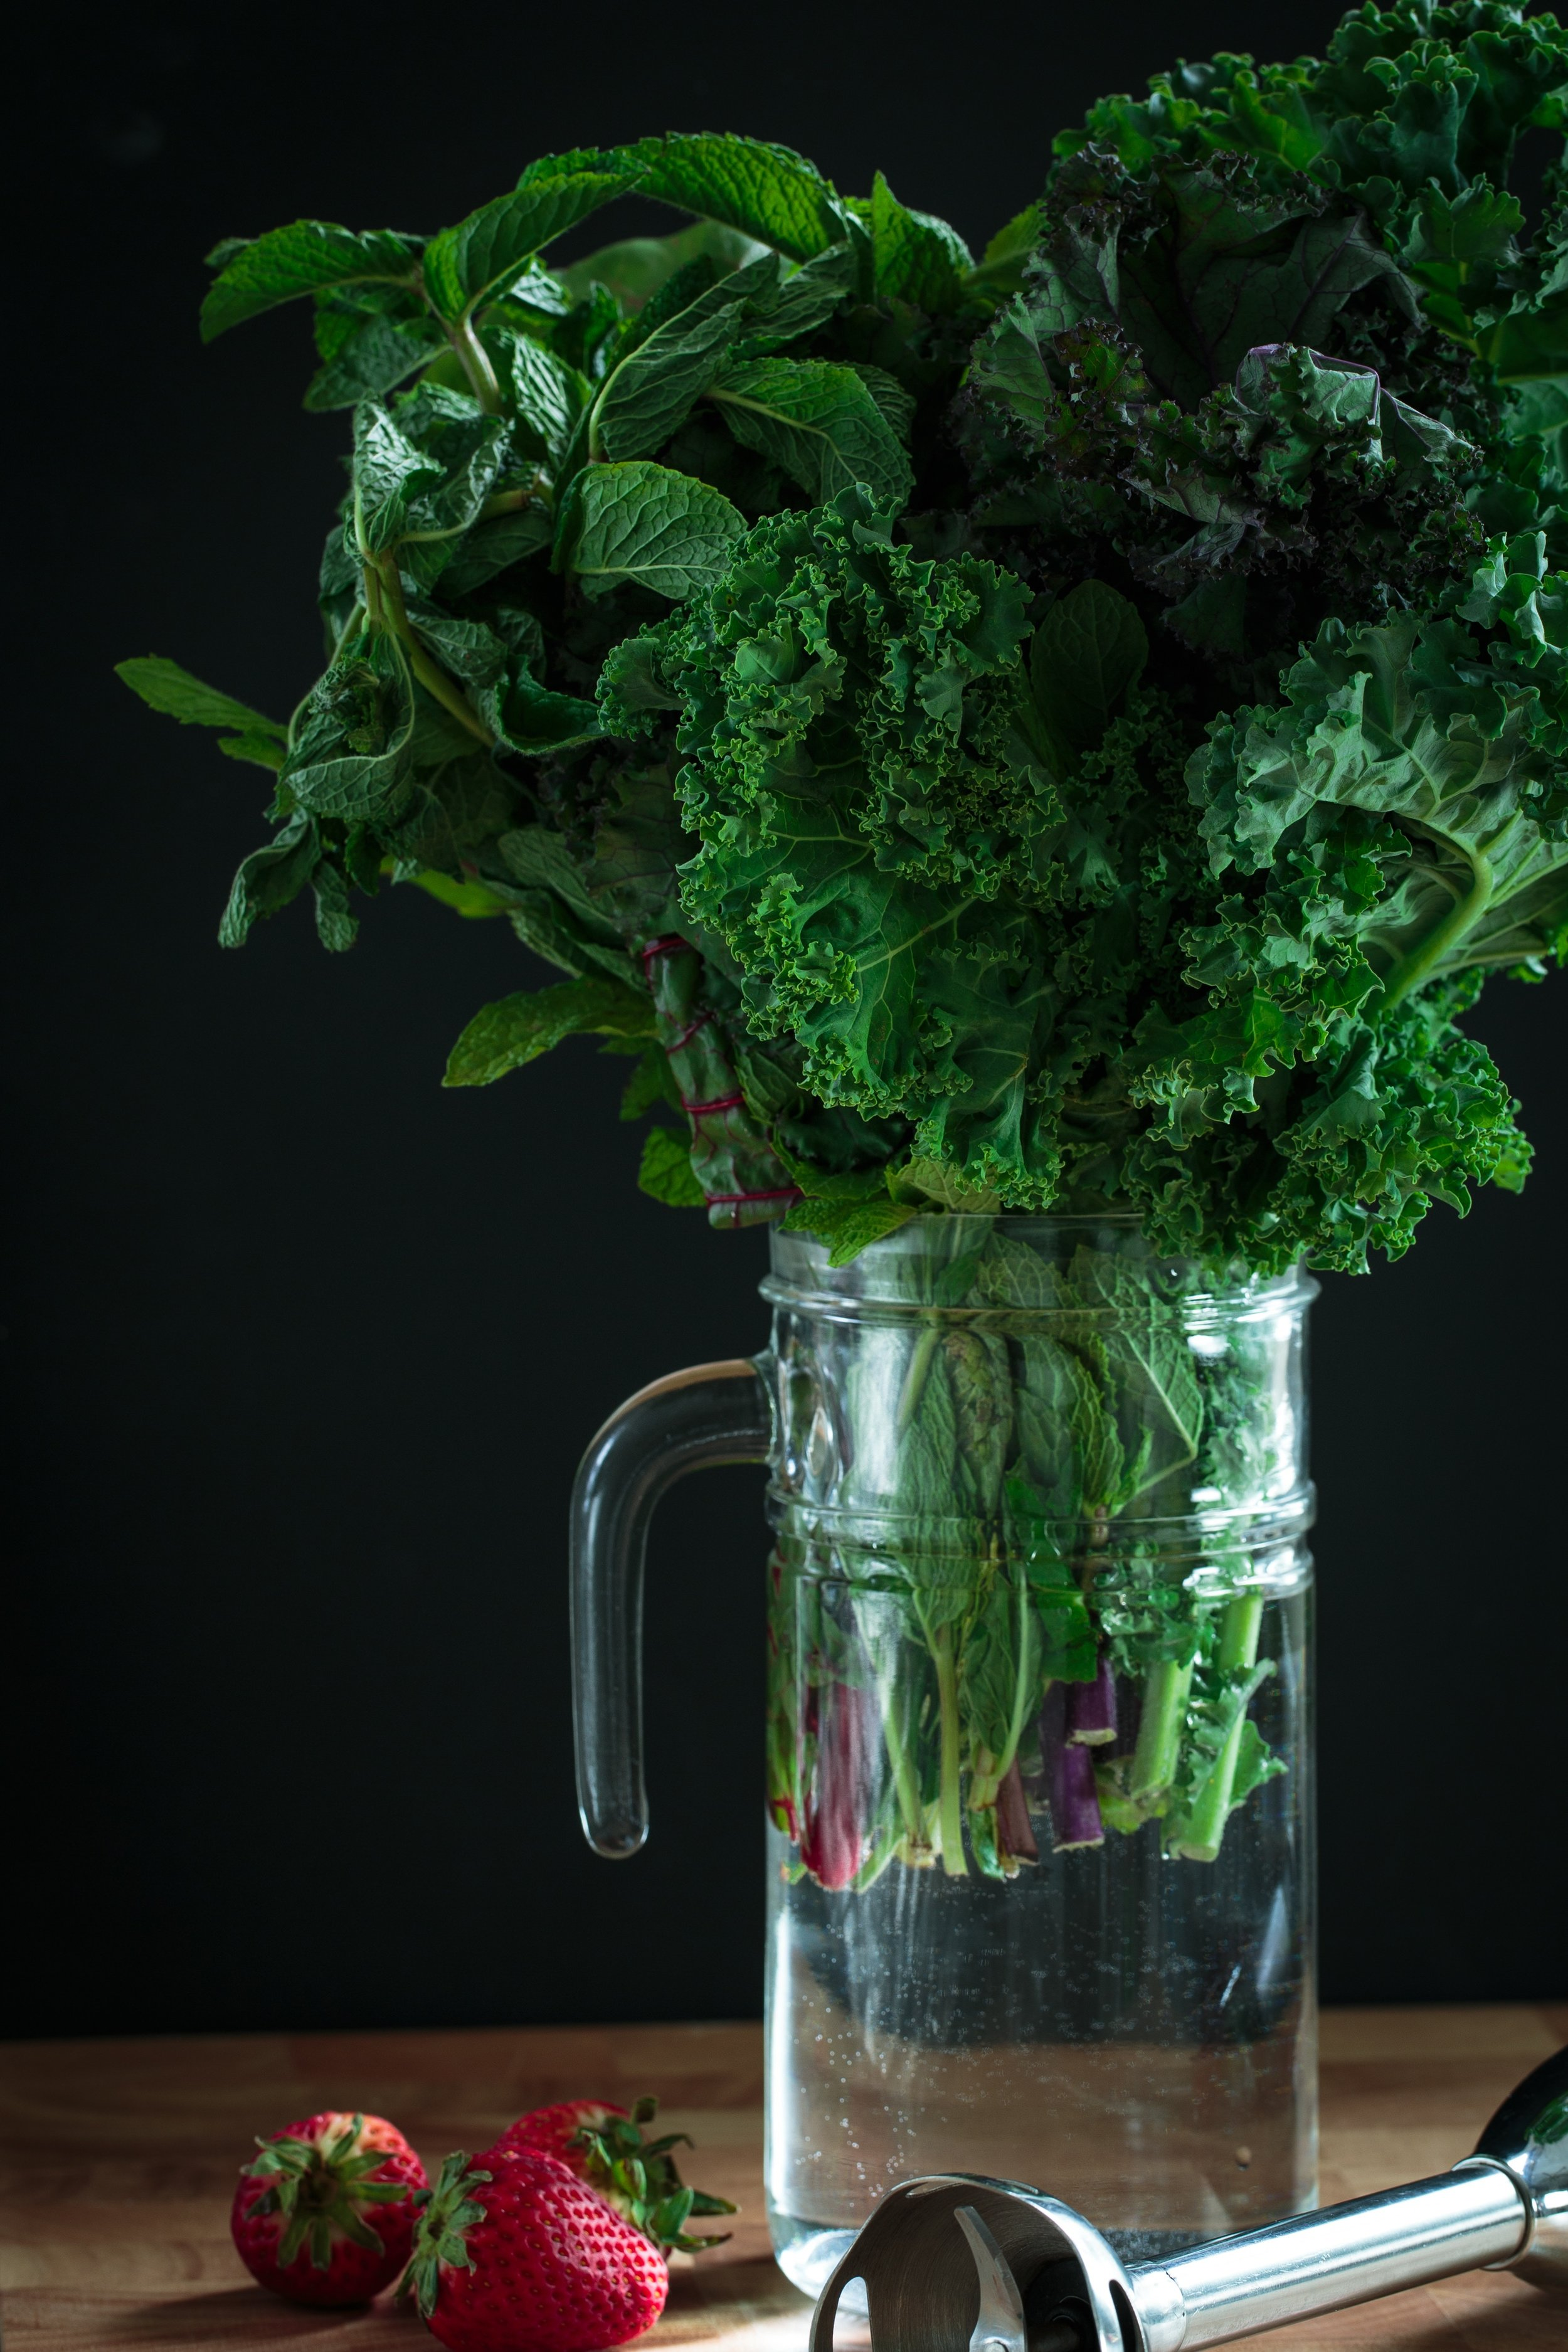 Dark leafy greens are full of B vitamins for energy as well as magnesium (the calming mineral) which 80% of us are deficient in.